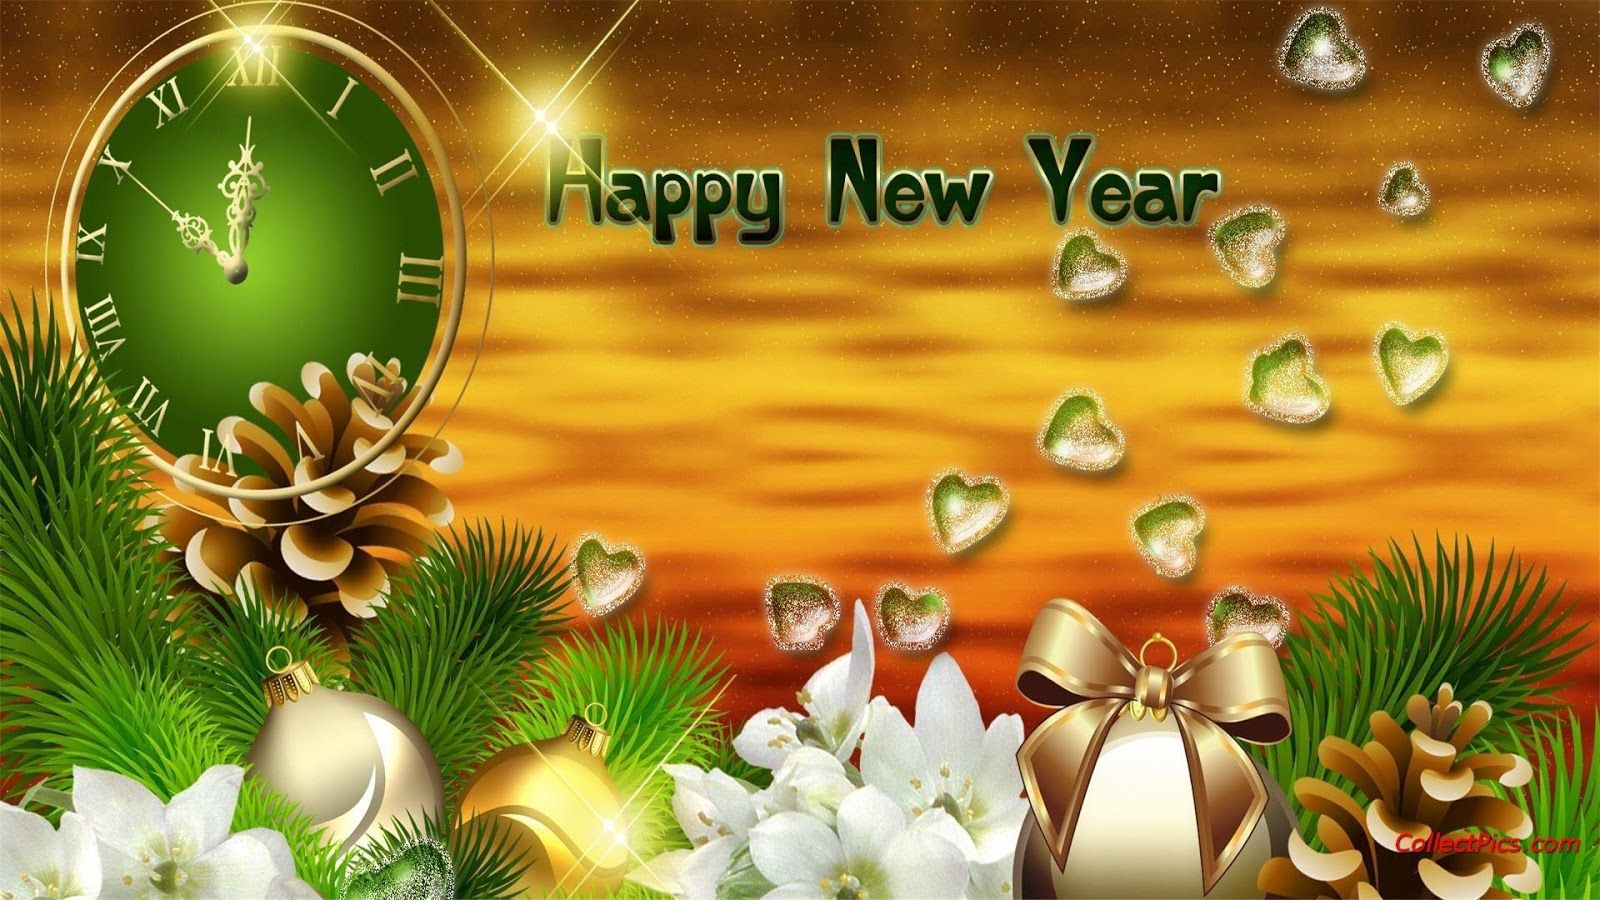 You can download the Happy New Year Wallpaper in hd and